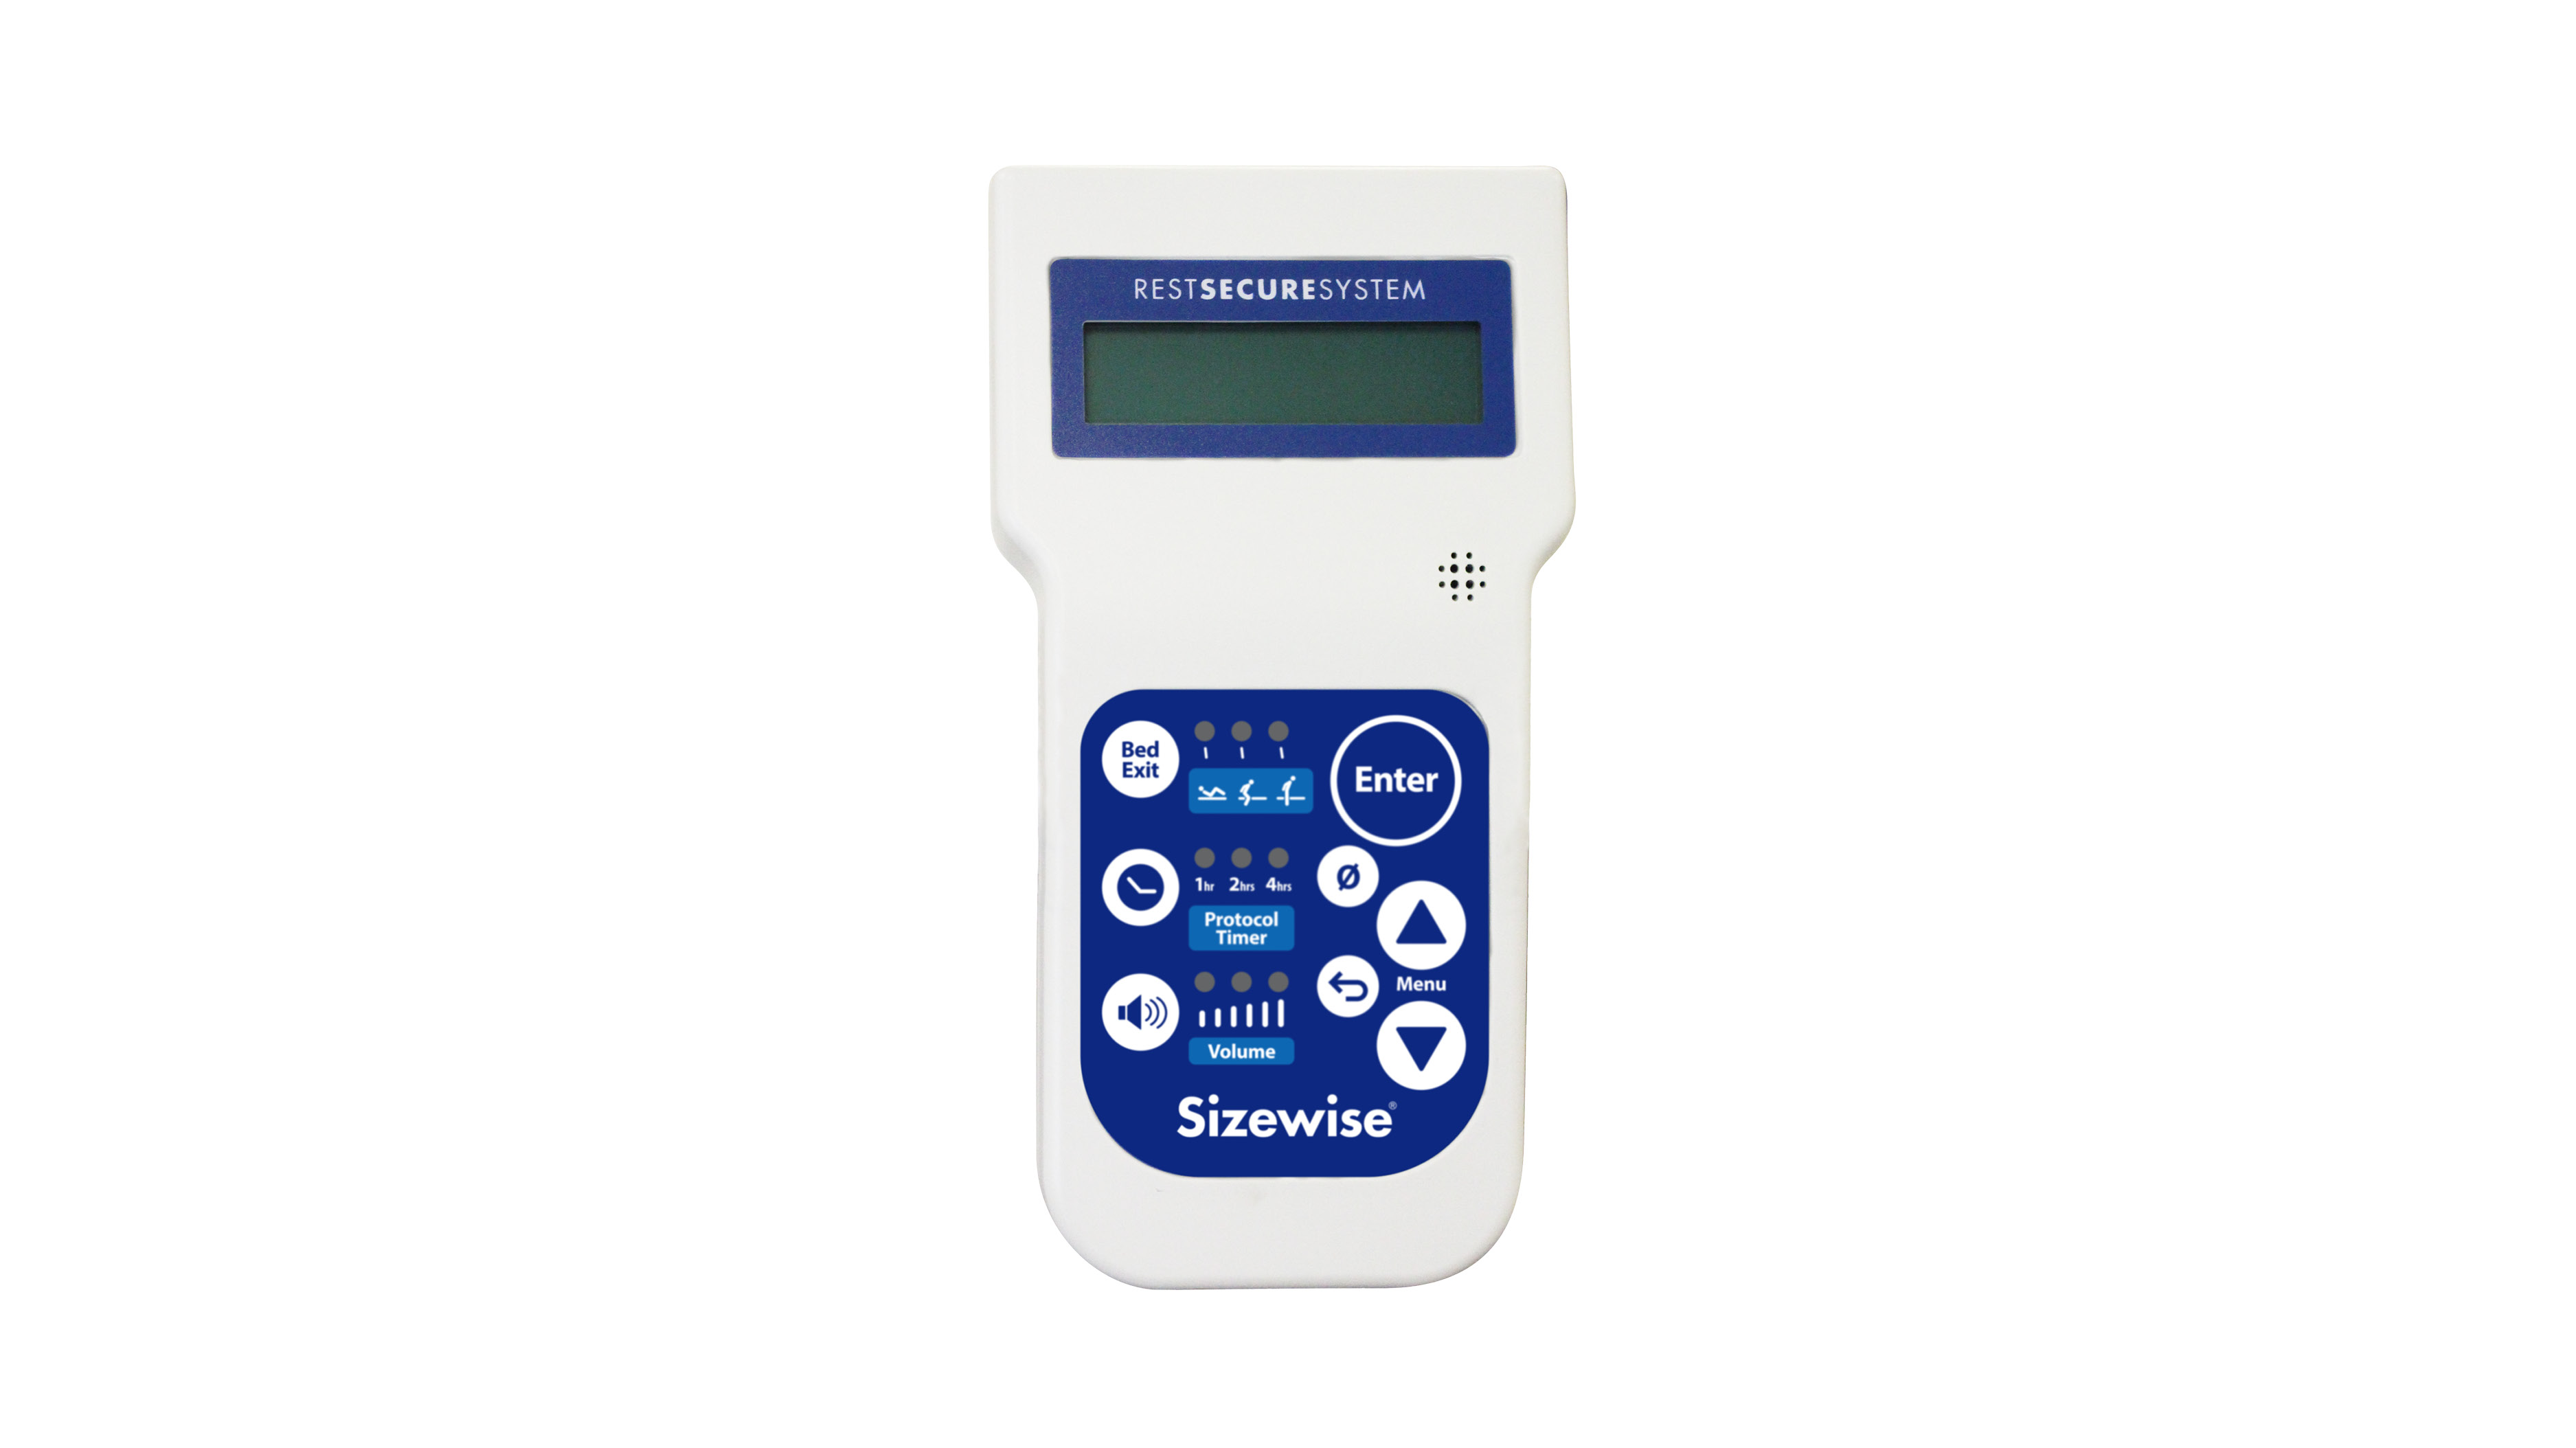 Rest Secure System 3™ includes bed exit alarm, protocol timer, and scale